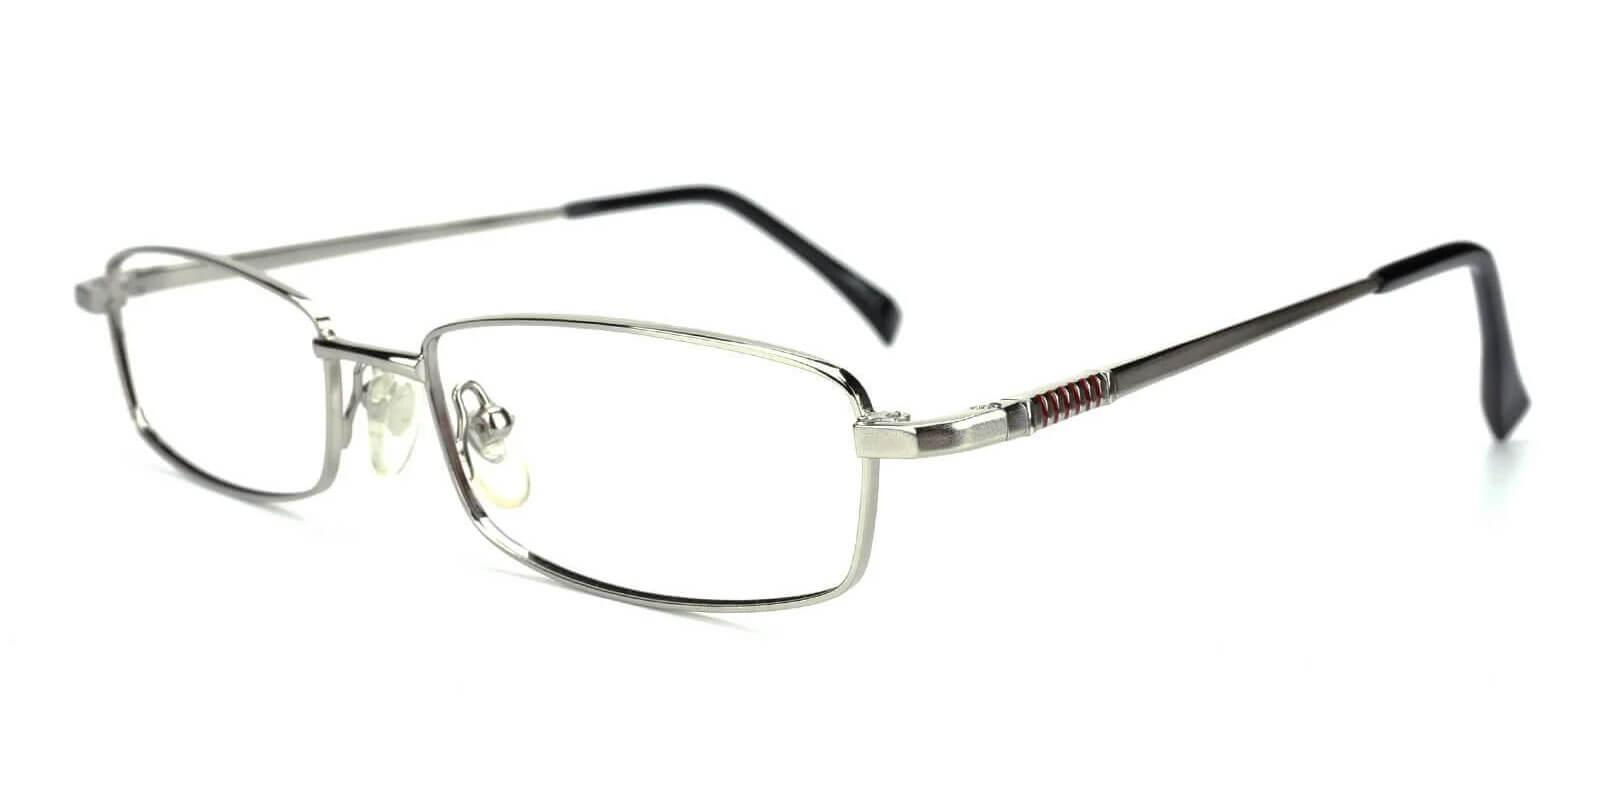 Curie Silver Metal Eyeglasses , NosePads Frames from ABBE Glasses